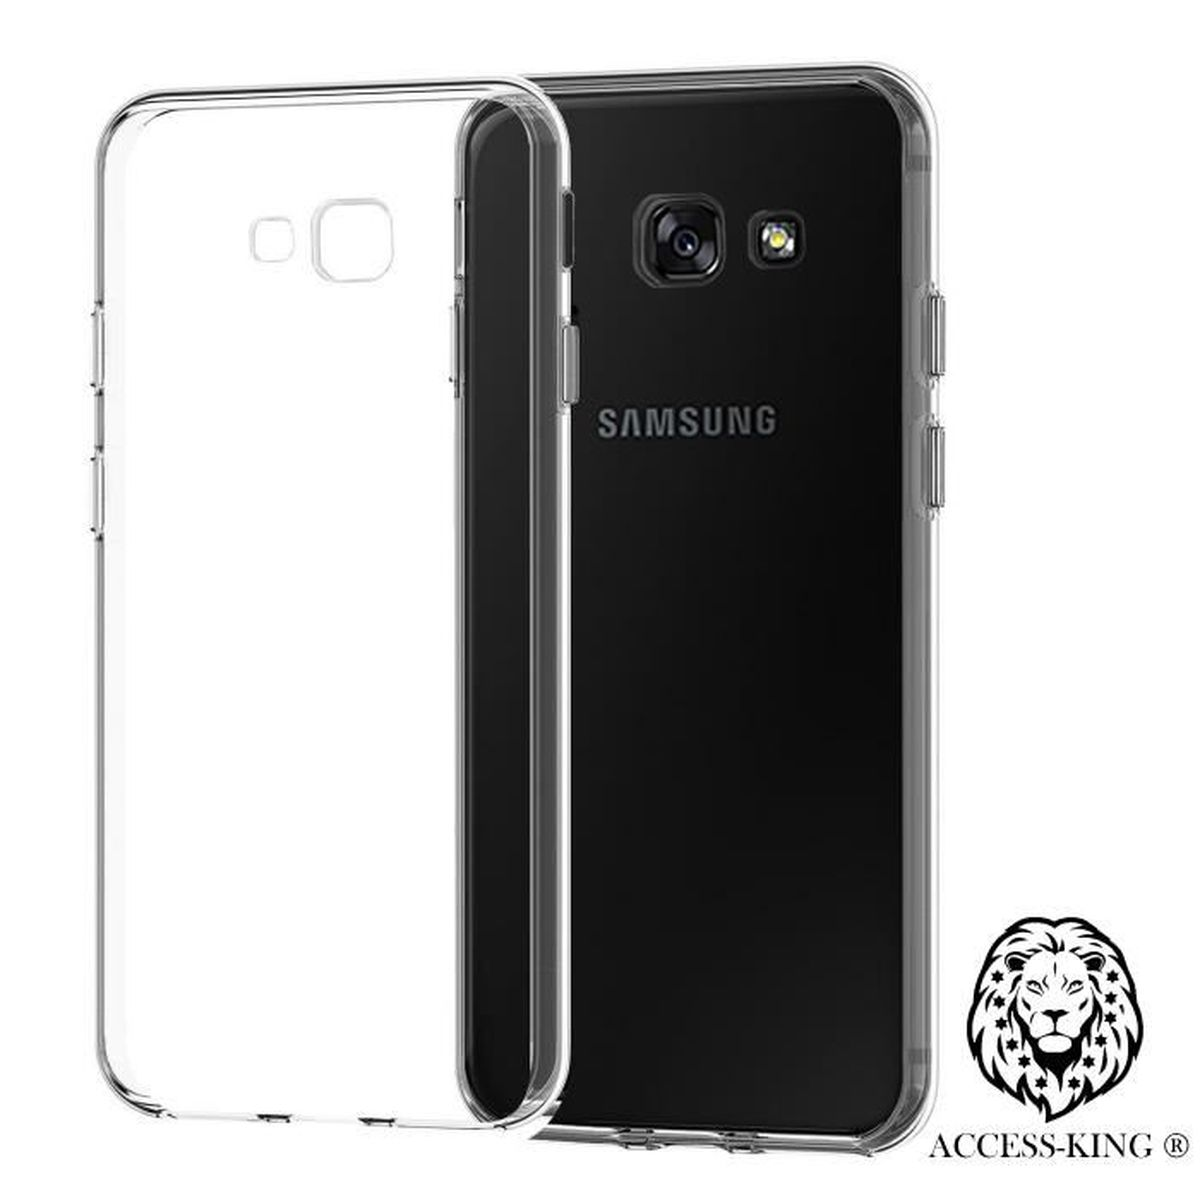 samsung galaxy a3 2017 etui ultra mince housse silicone transparent film verre trempe offert. Black Bedroom Furniture Sets. Home Design Ideas